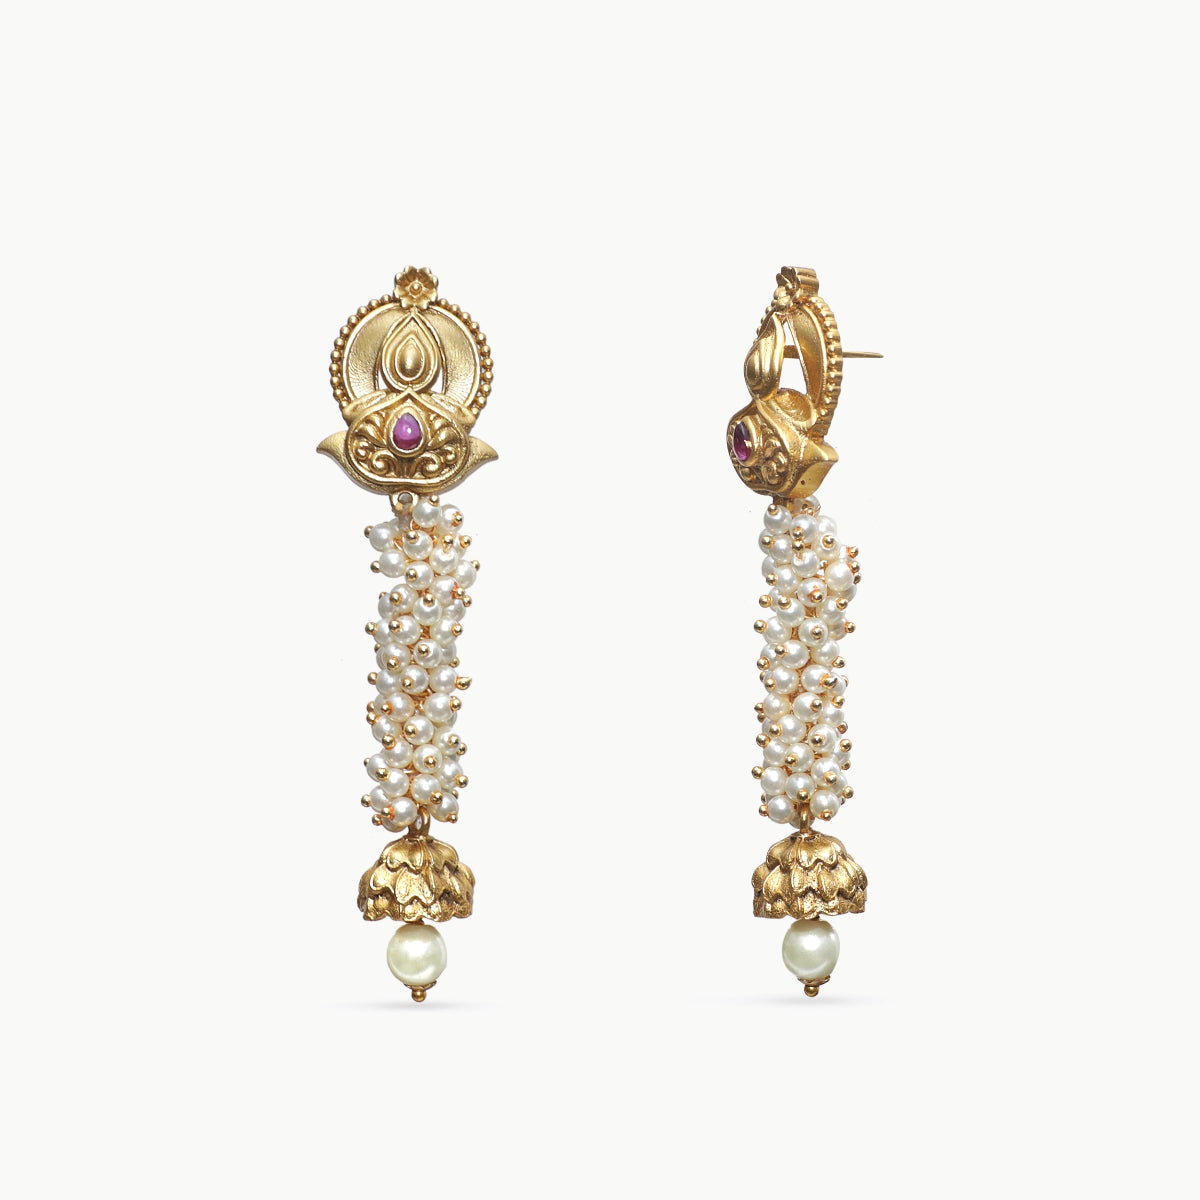 Indira Antique Earrings